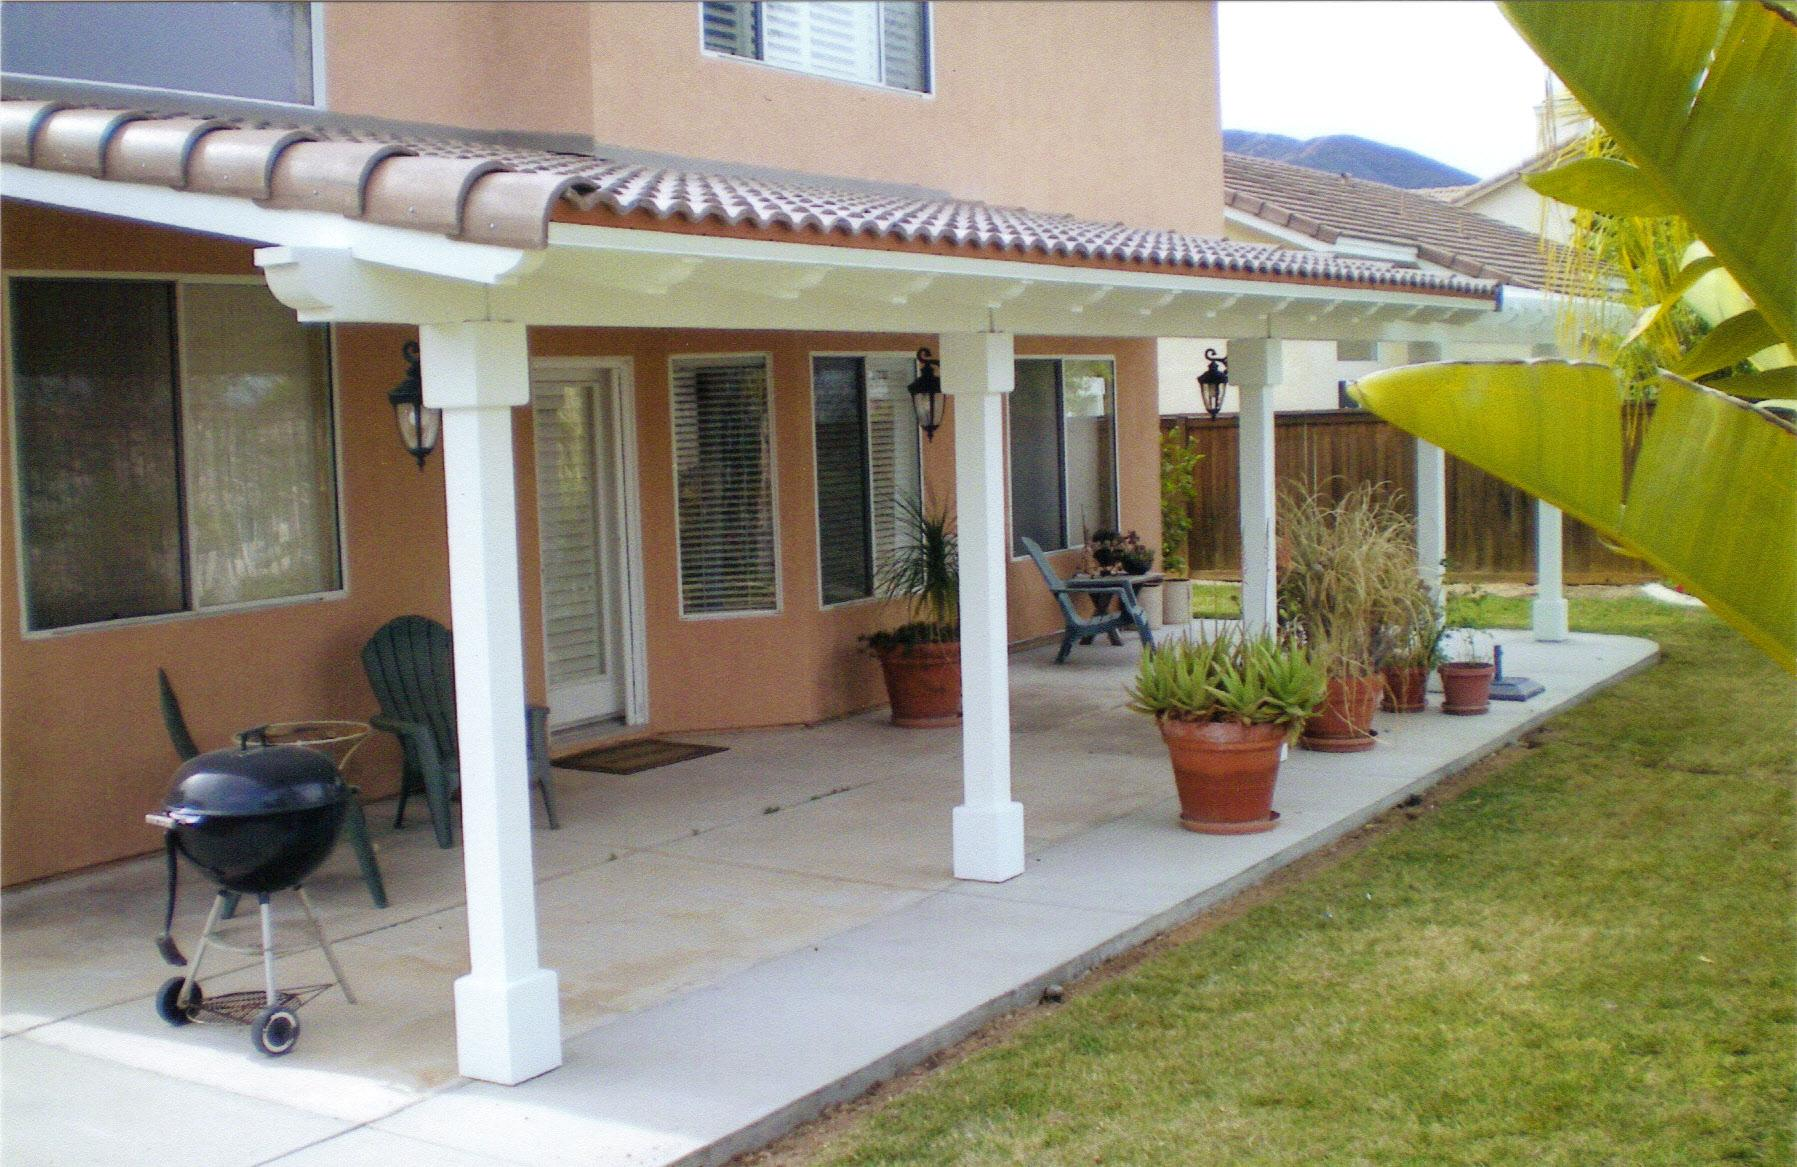 Wooden Patio Covers Design - HomesFeed on Patio Covers Ideas  id=98144